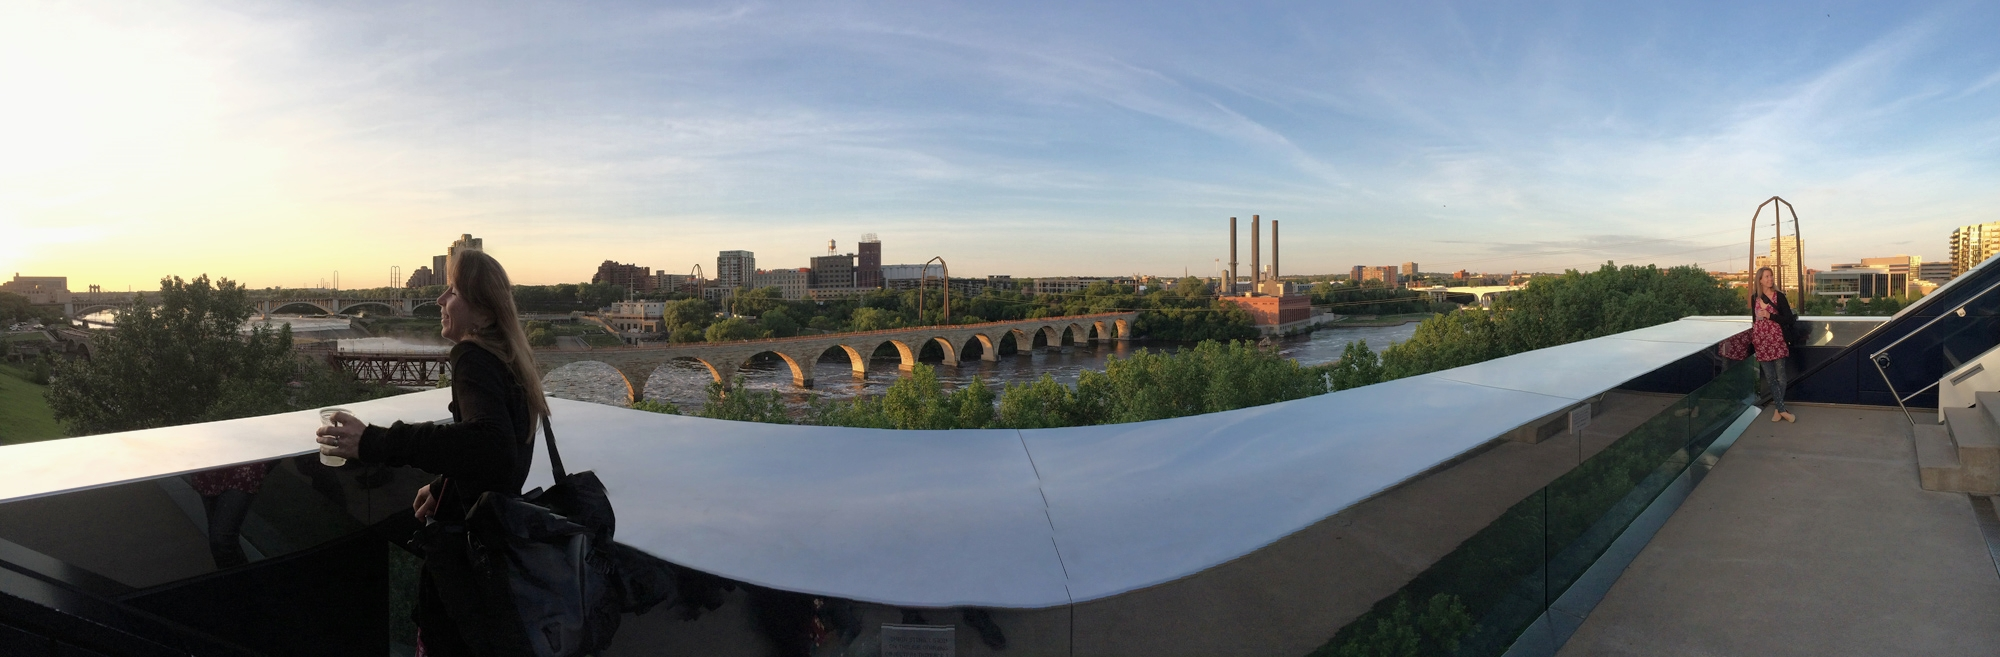 The view from the Guthrie Theatre. Photo credit to Steven Nutter.